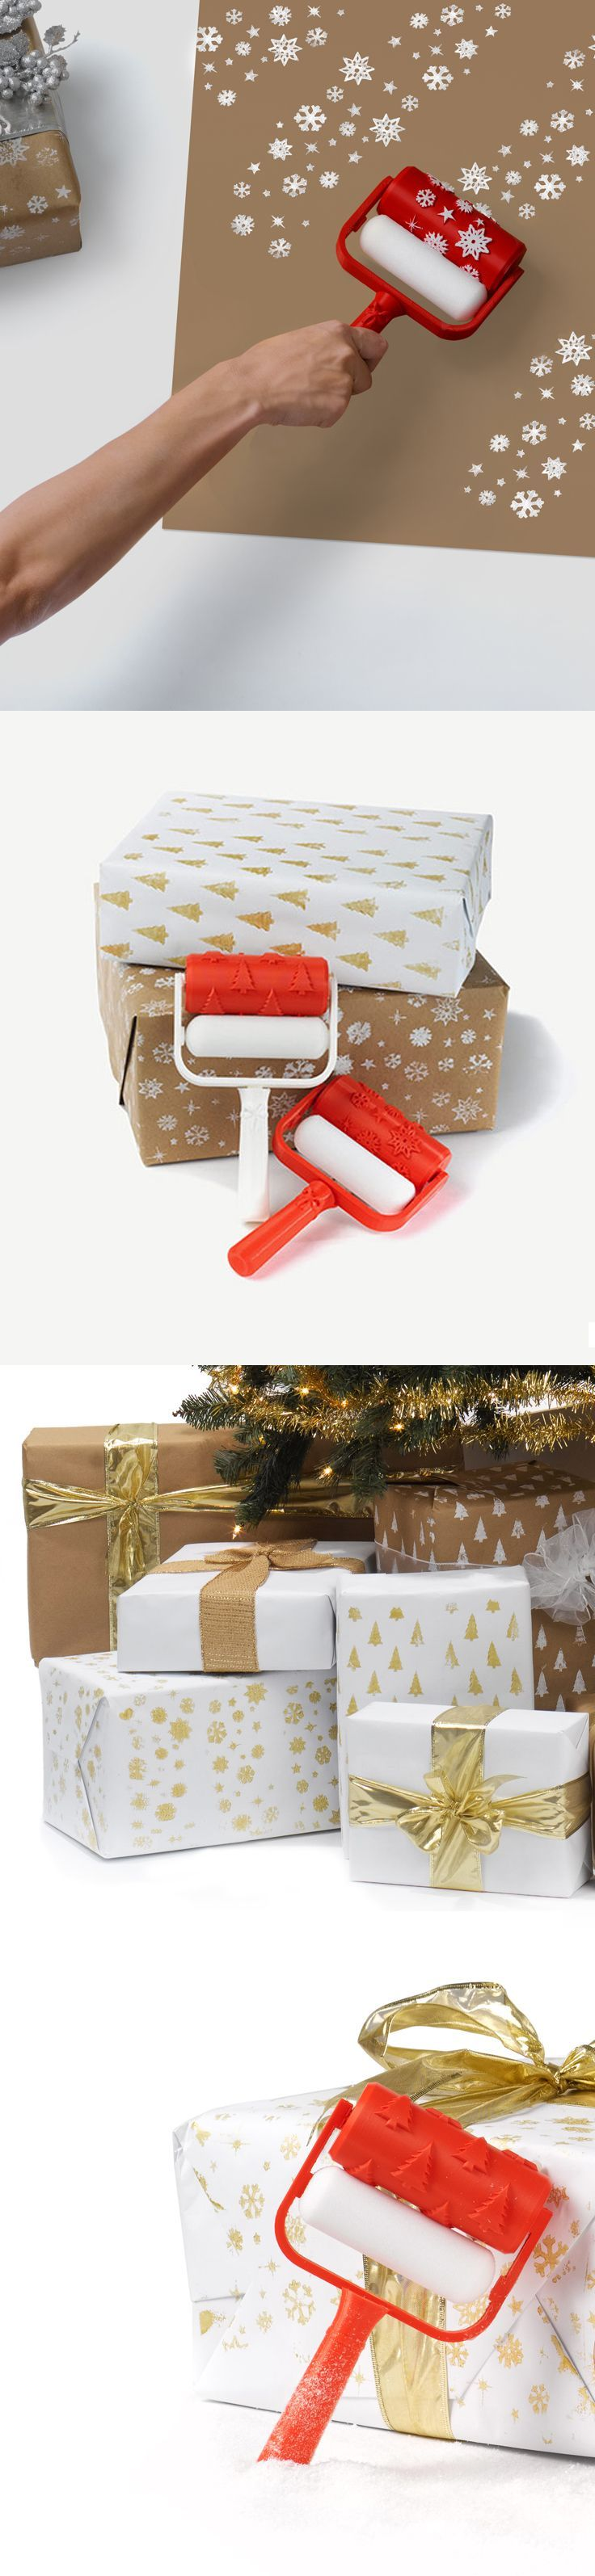 3D Printed Christmas Gift Wrap Paint Rollers by Matthijs Kok Maybe something for 3D Printer Chat?